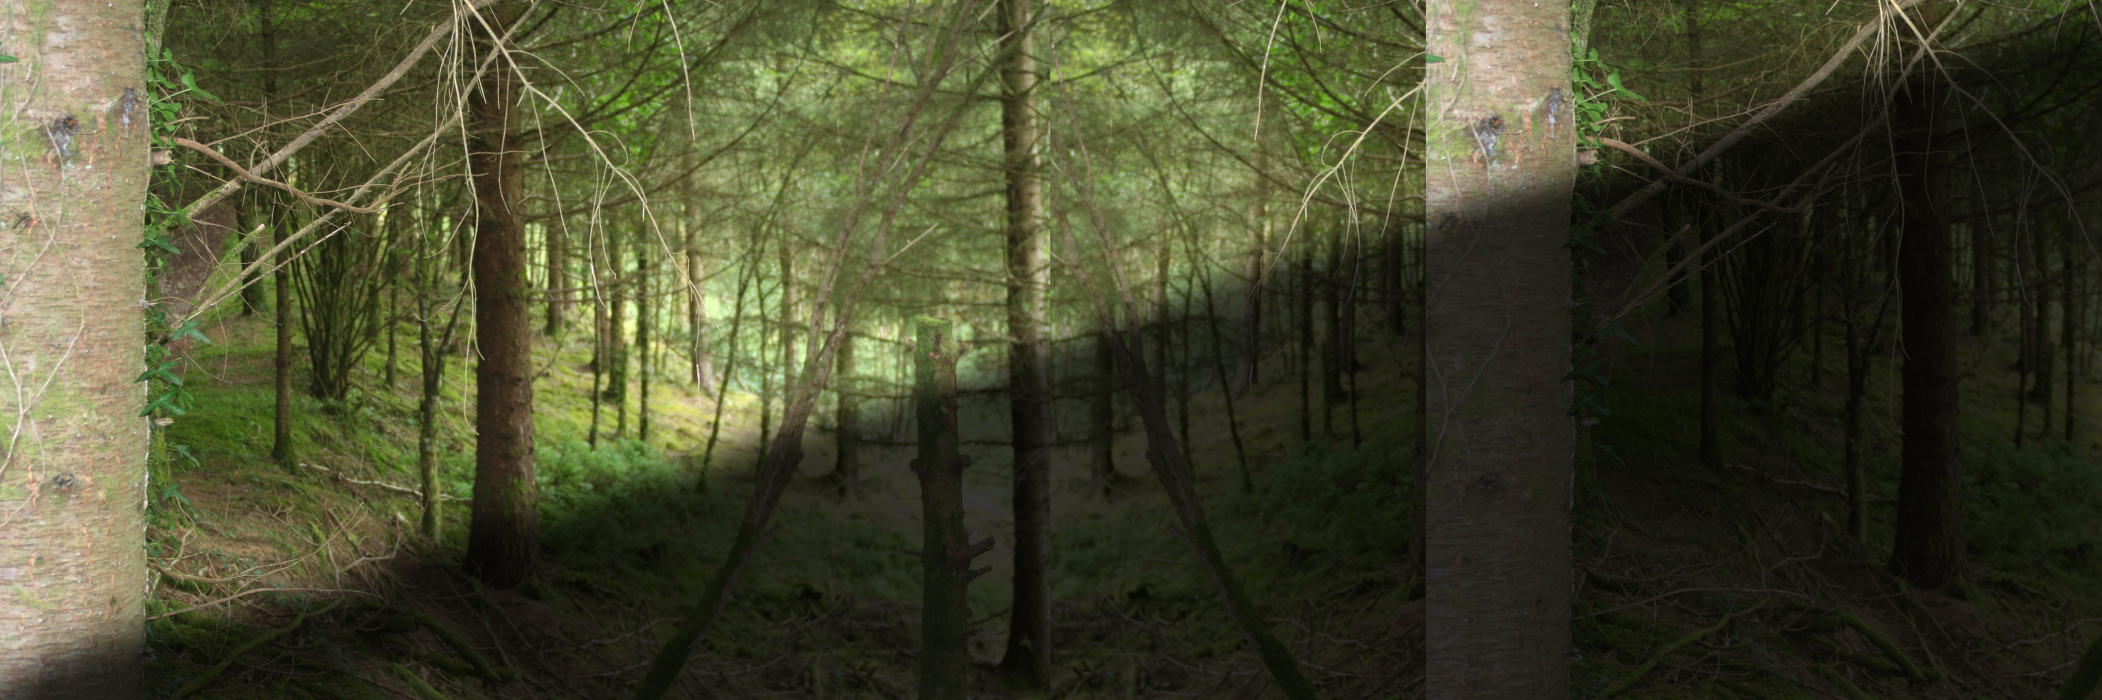 IMG_82sxd63-PHOTOMONTAGE-FOREST-700H